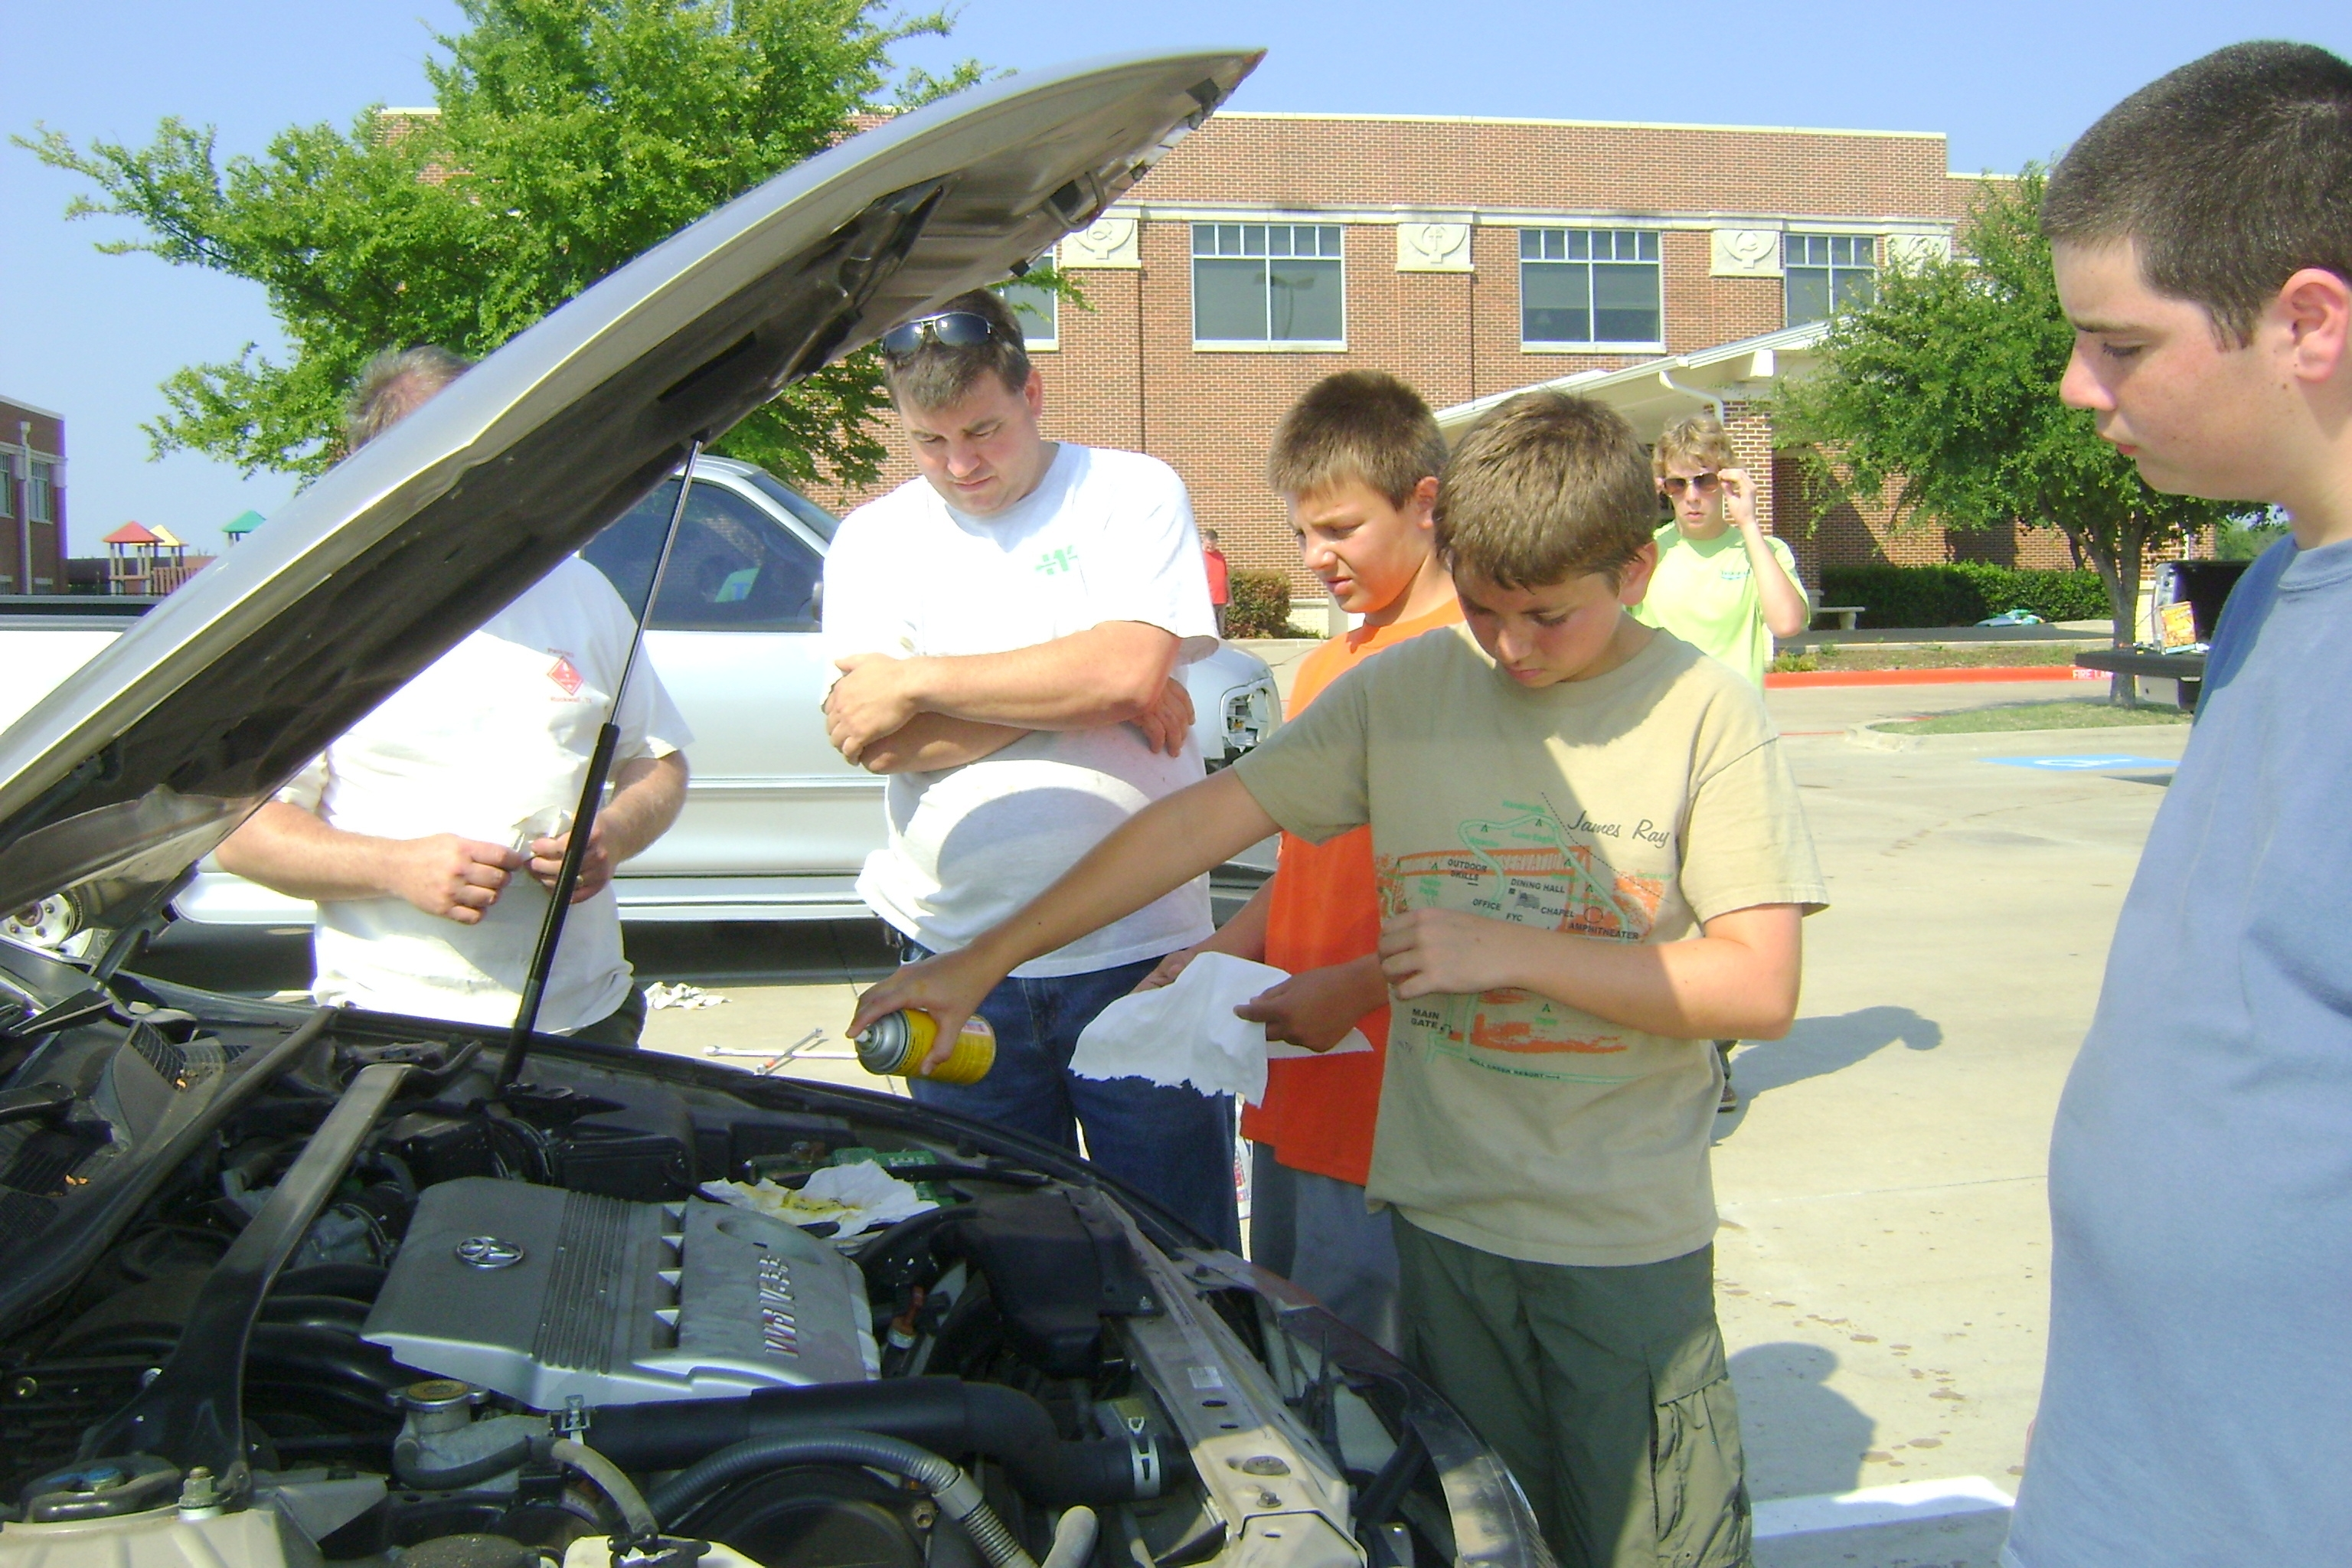 Eagle Scout project serves those in need by servicing their cars